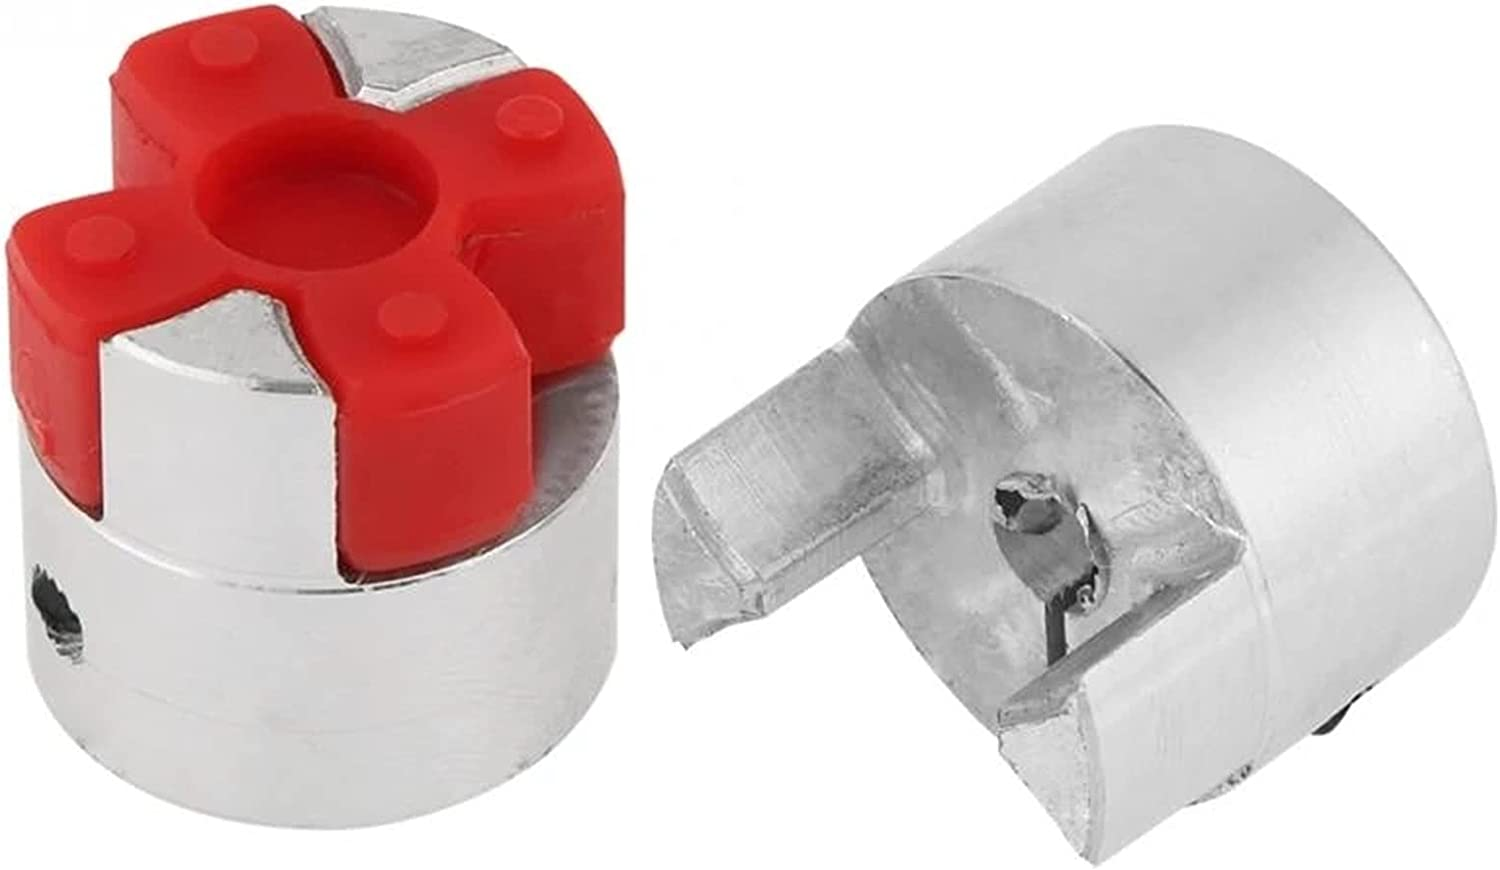 FENGYZ Ranking integrated 1st place 1pcs Spider Shaft Max 83% OFF Coupling Flexible Coupler CNC